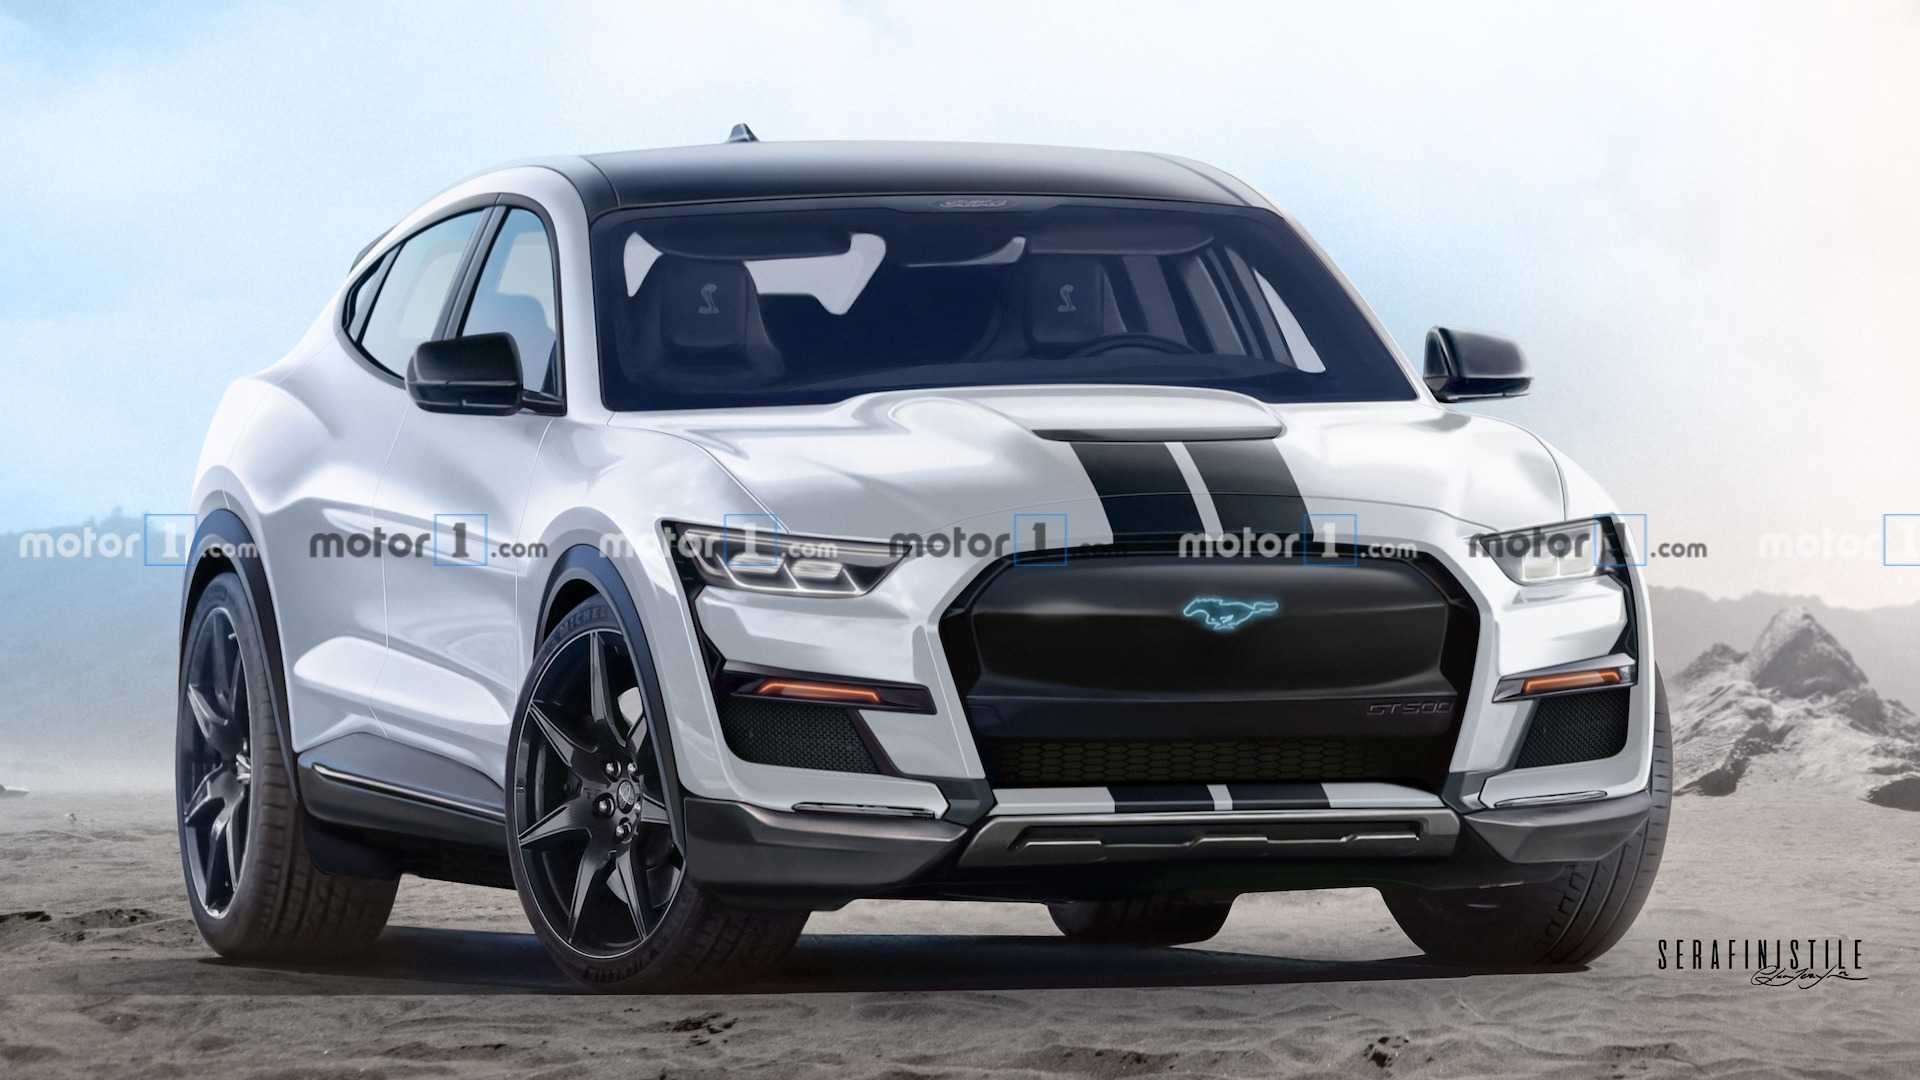 2020 Mustang Mach Research New